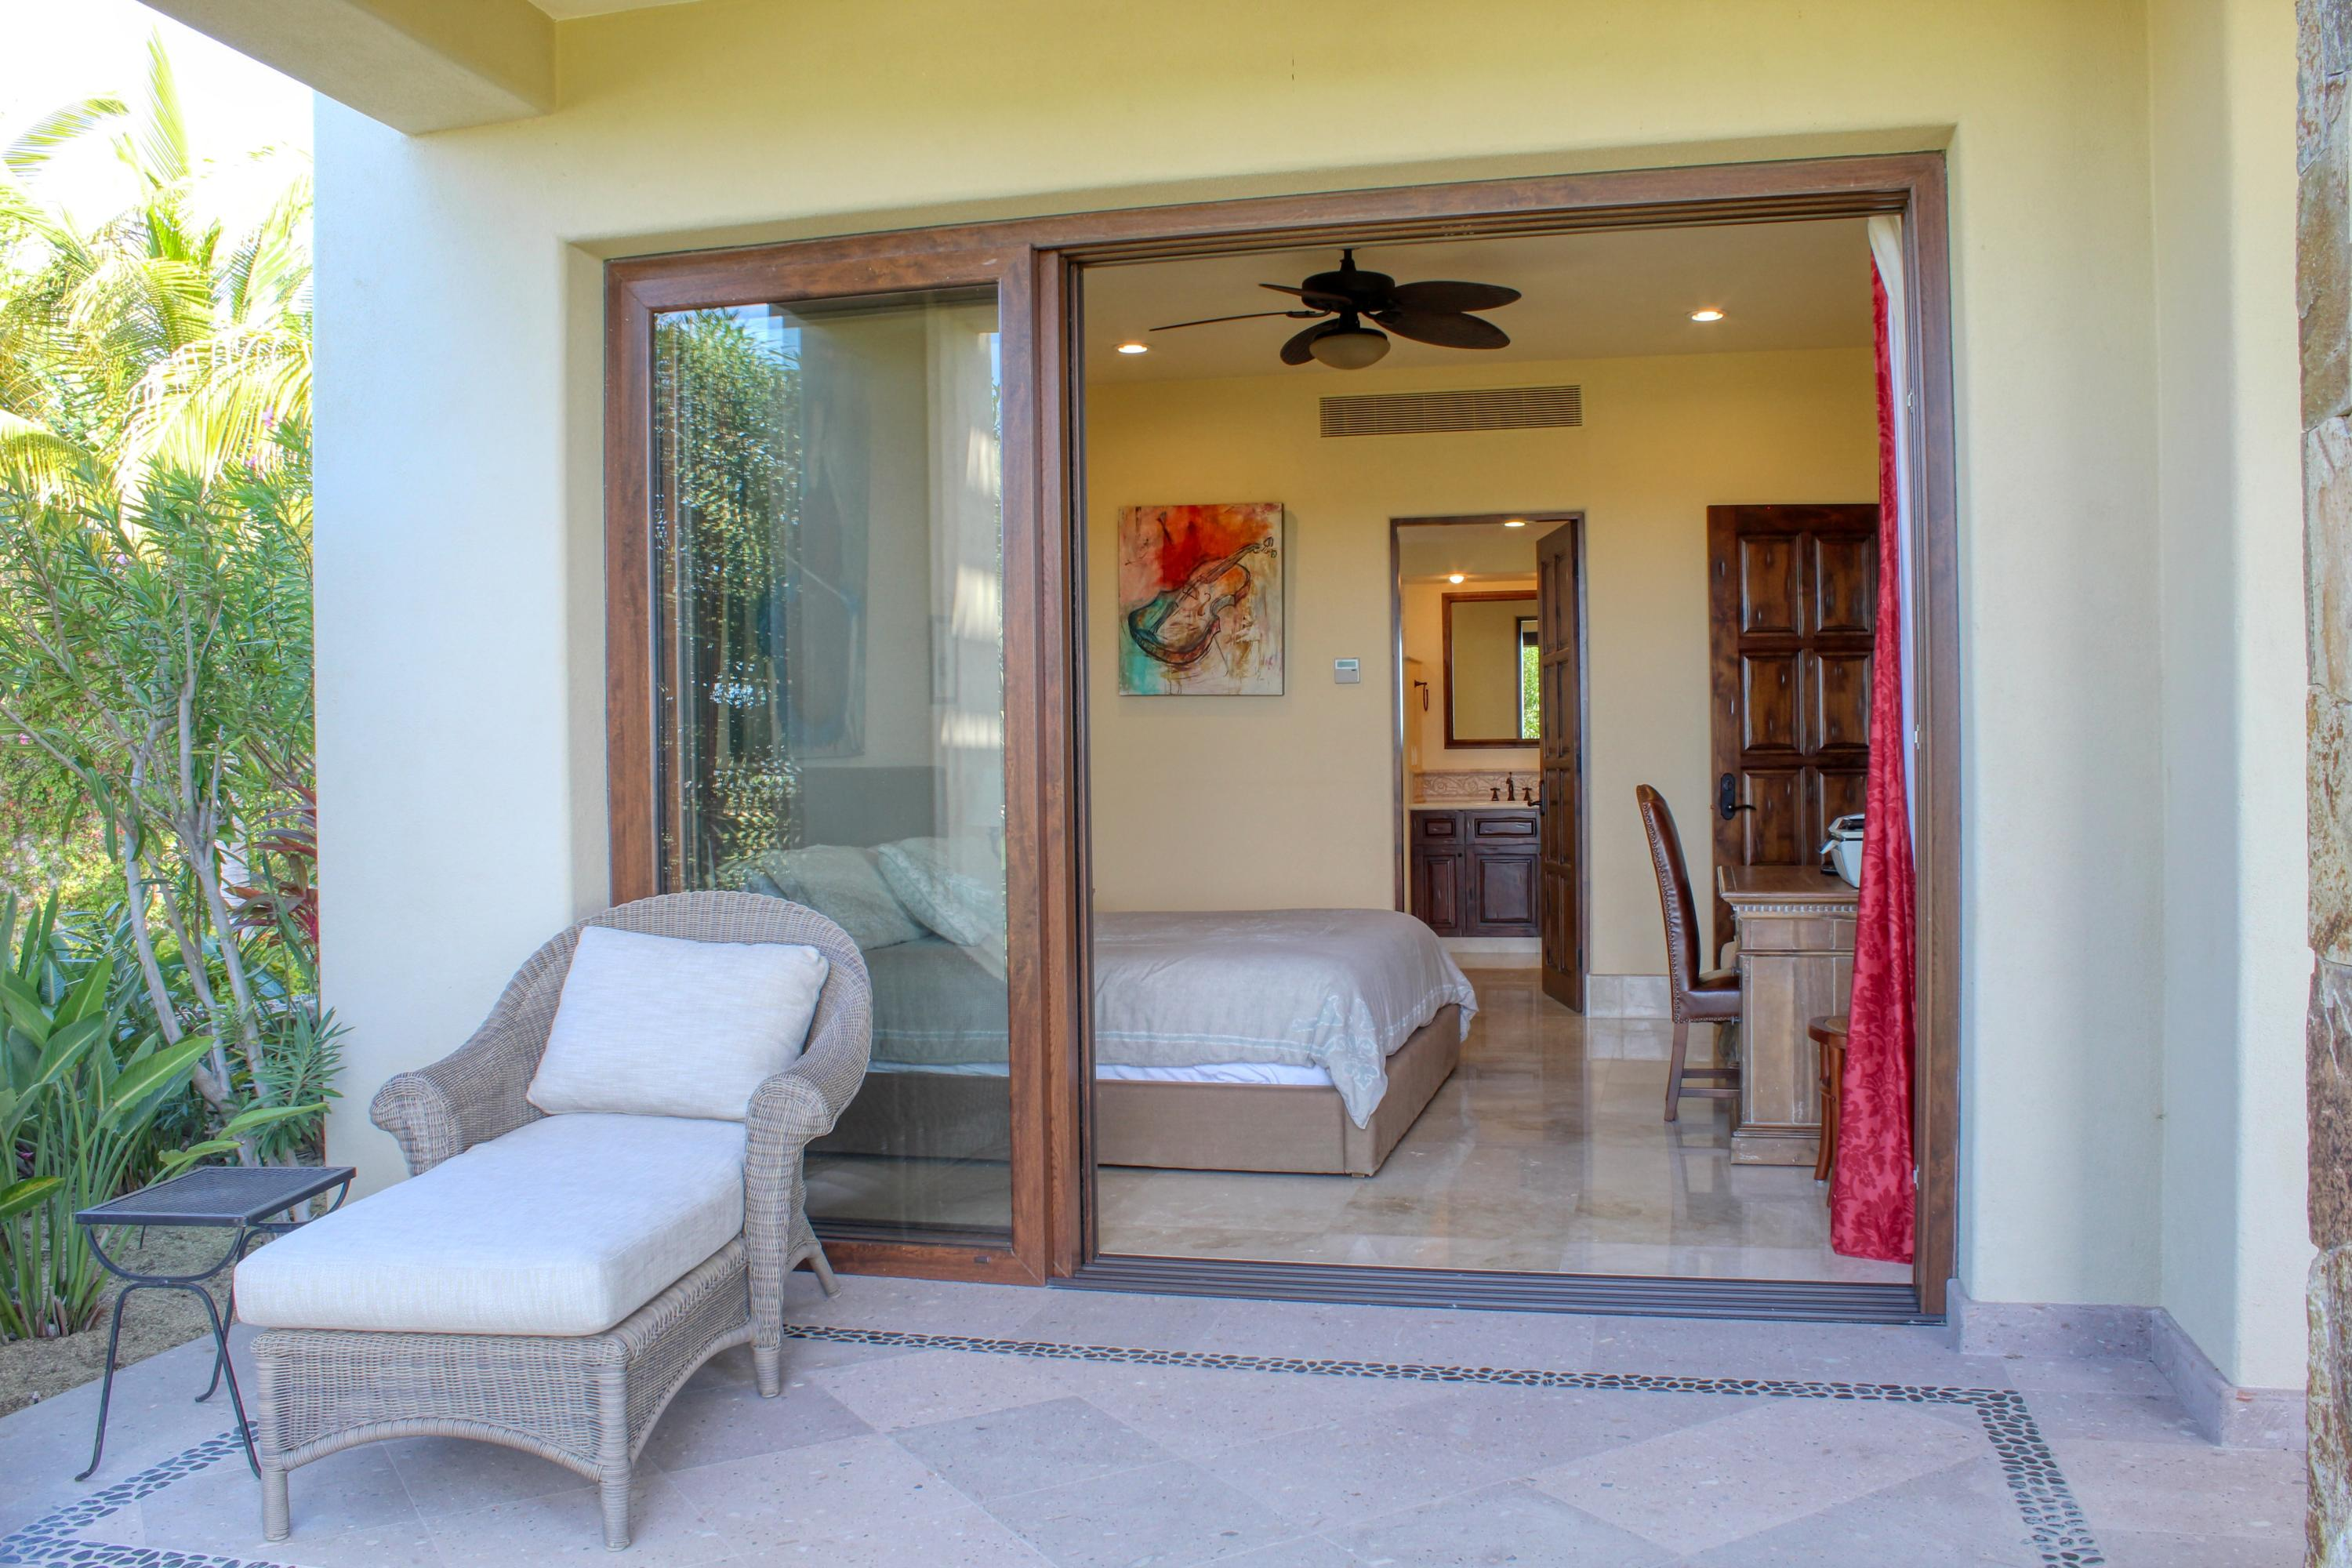 San Jose del Cabo, 3 Bedrooms Bedrooms, ,3 BathroomsBathrooms,Condo,For Sale,Av. San Javier,18-796